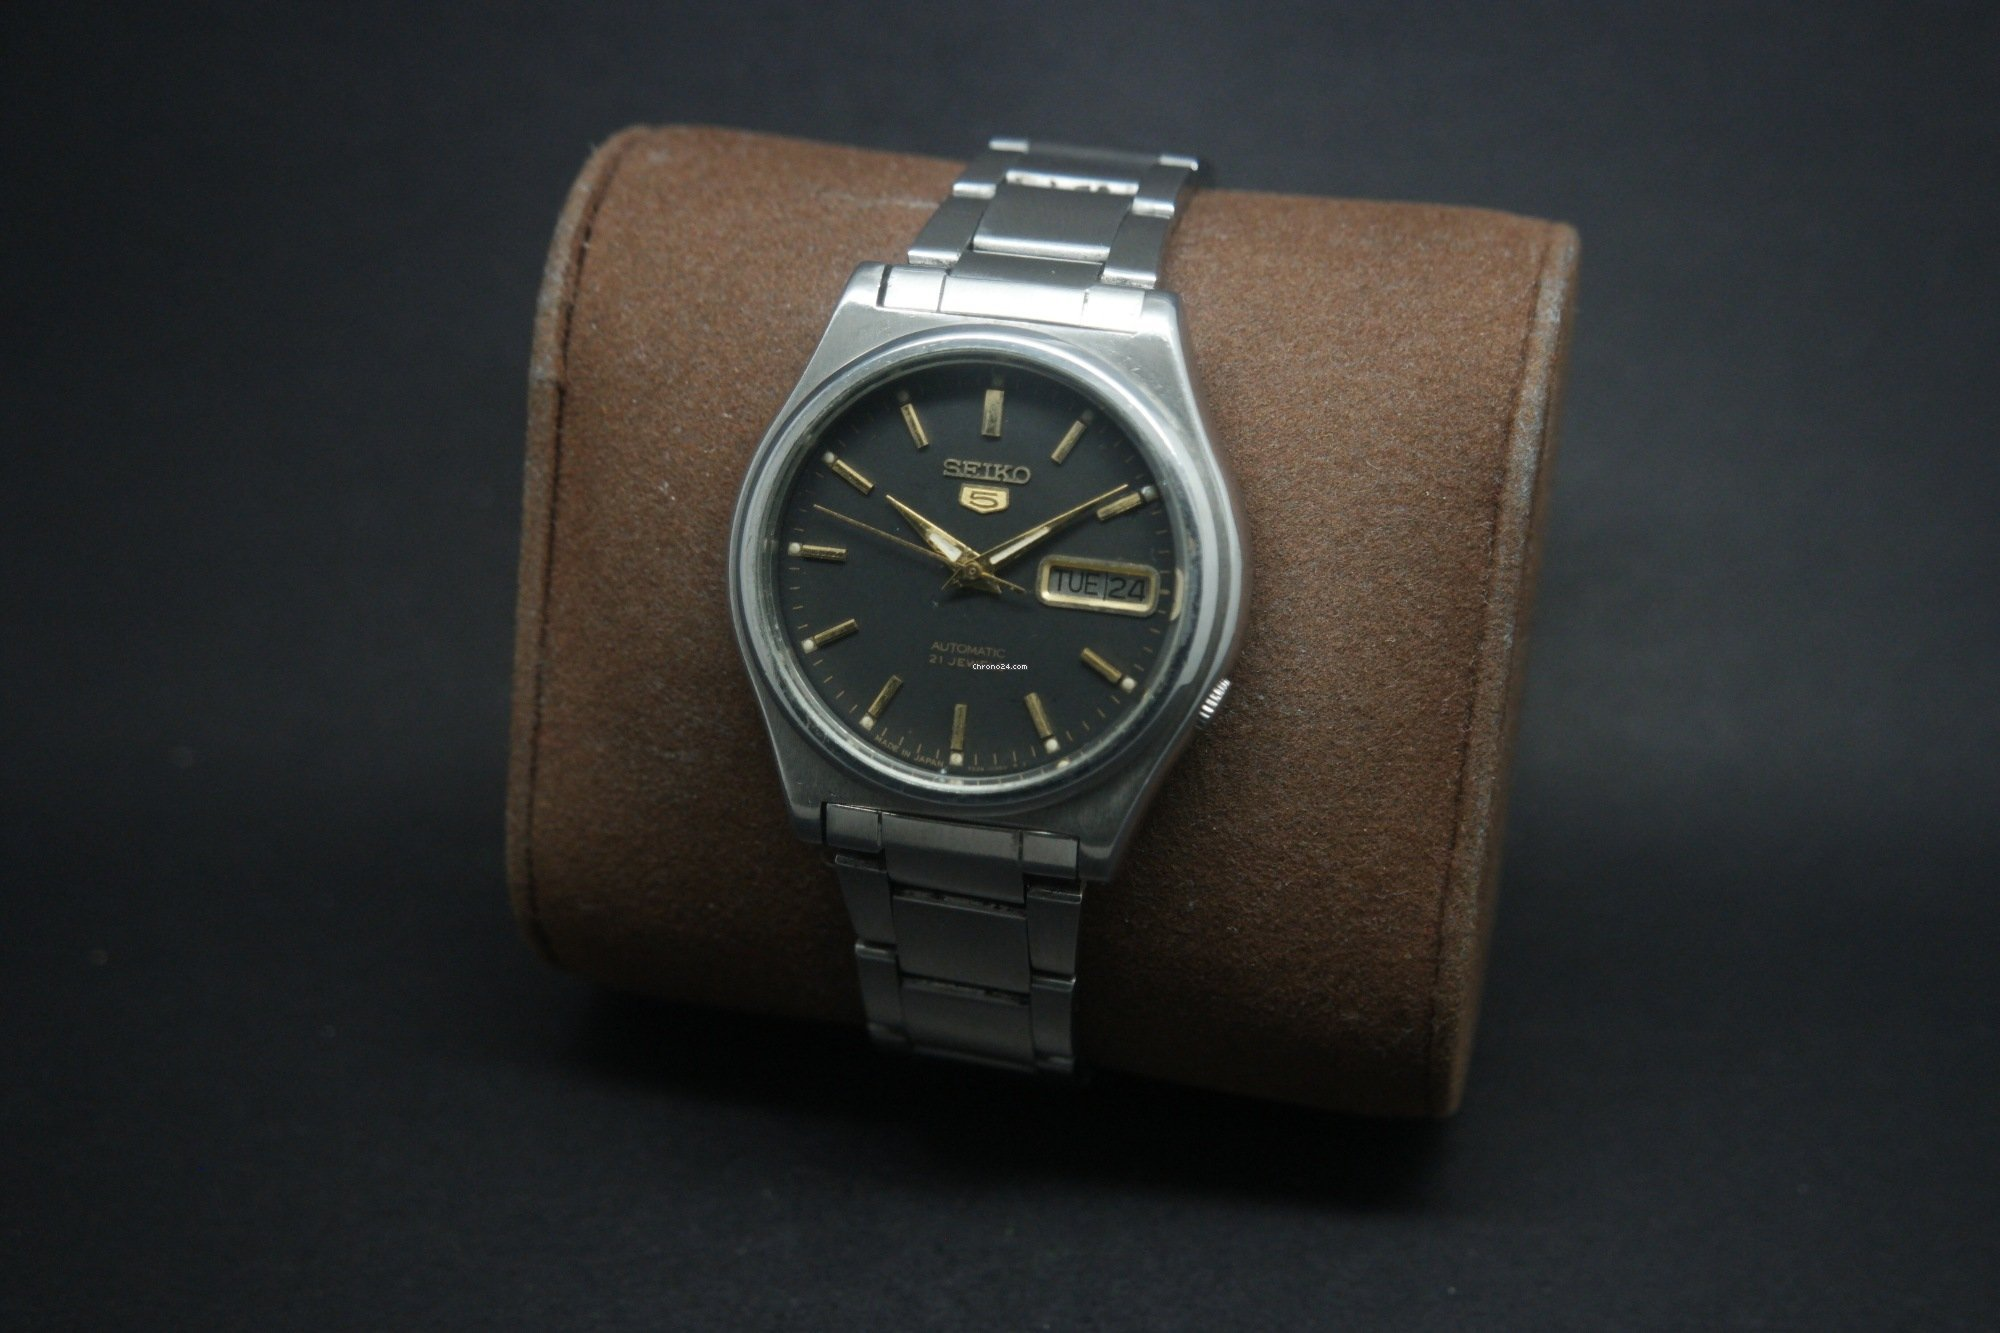 Seiko Vintage Seiko 5 Automatic Black Dial Day Date 21j Watch